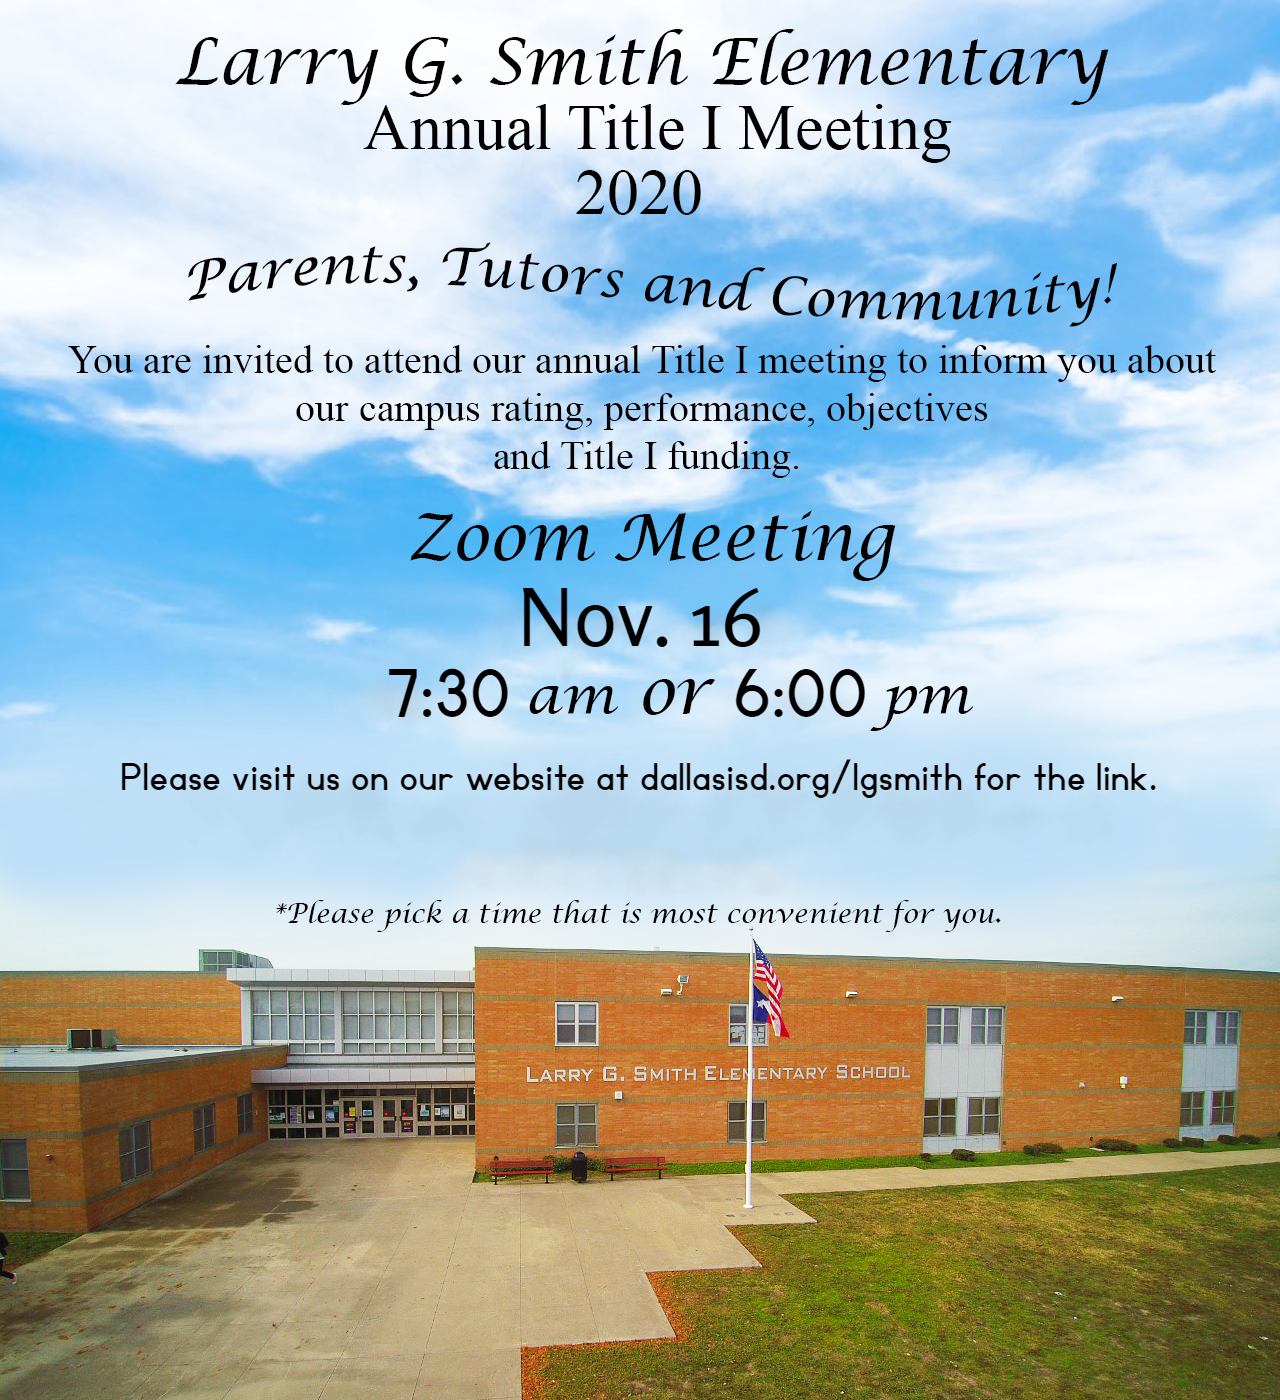 Annual Title I Meeting Information